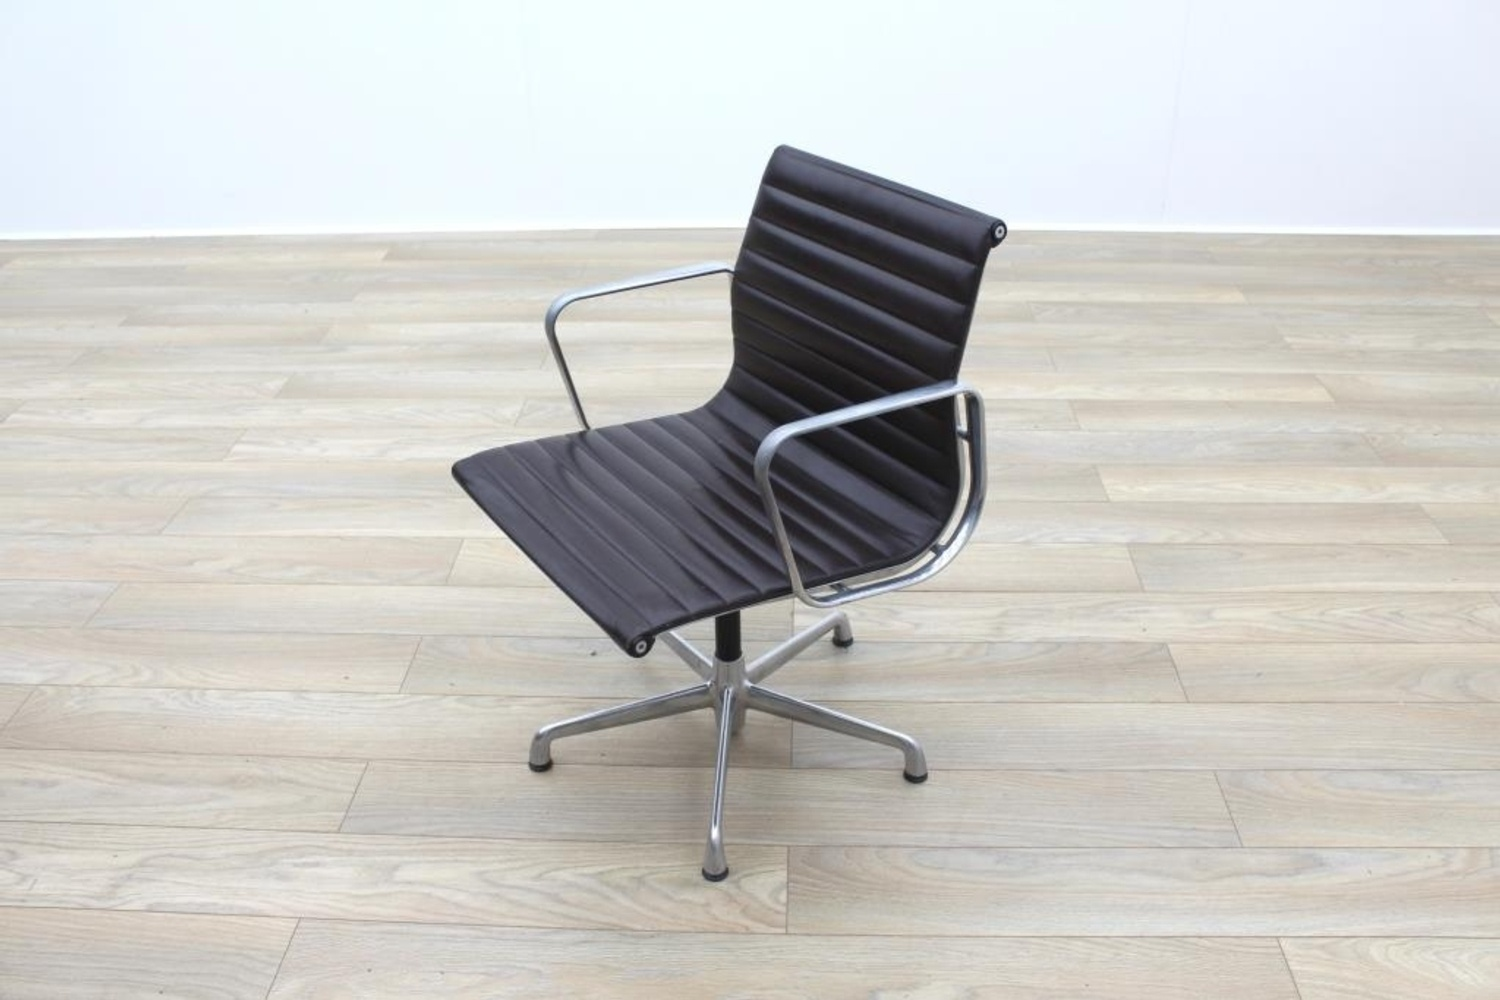 Genuine charles eames ea108 by icf brown leather ribbed office chair ebay - Eames office chair original ...